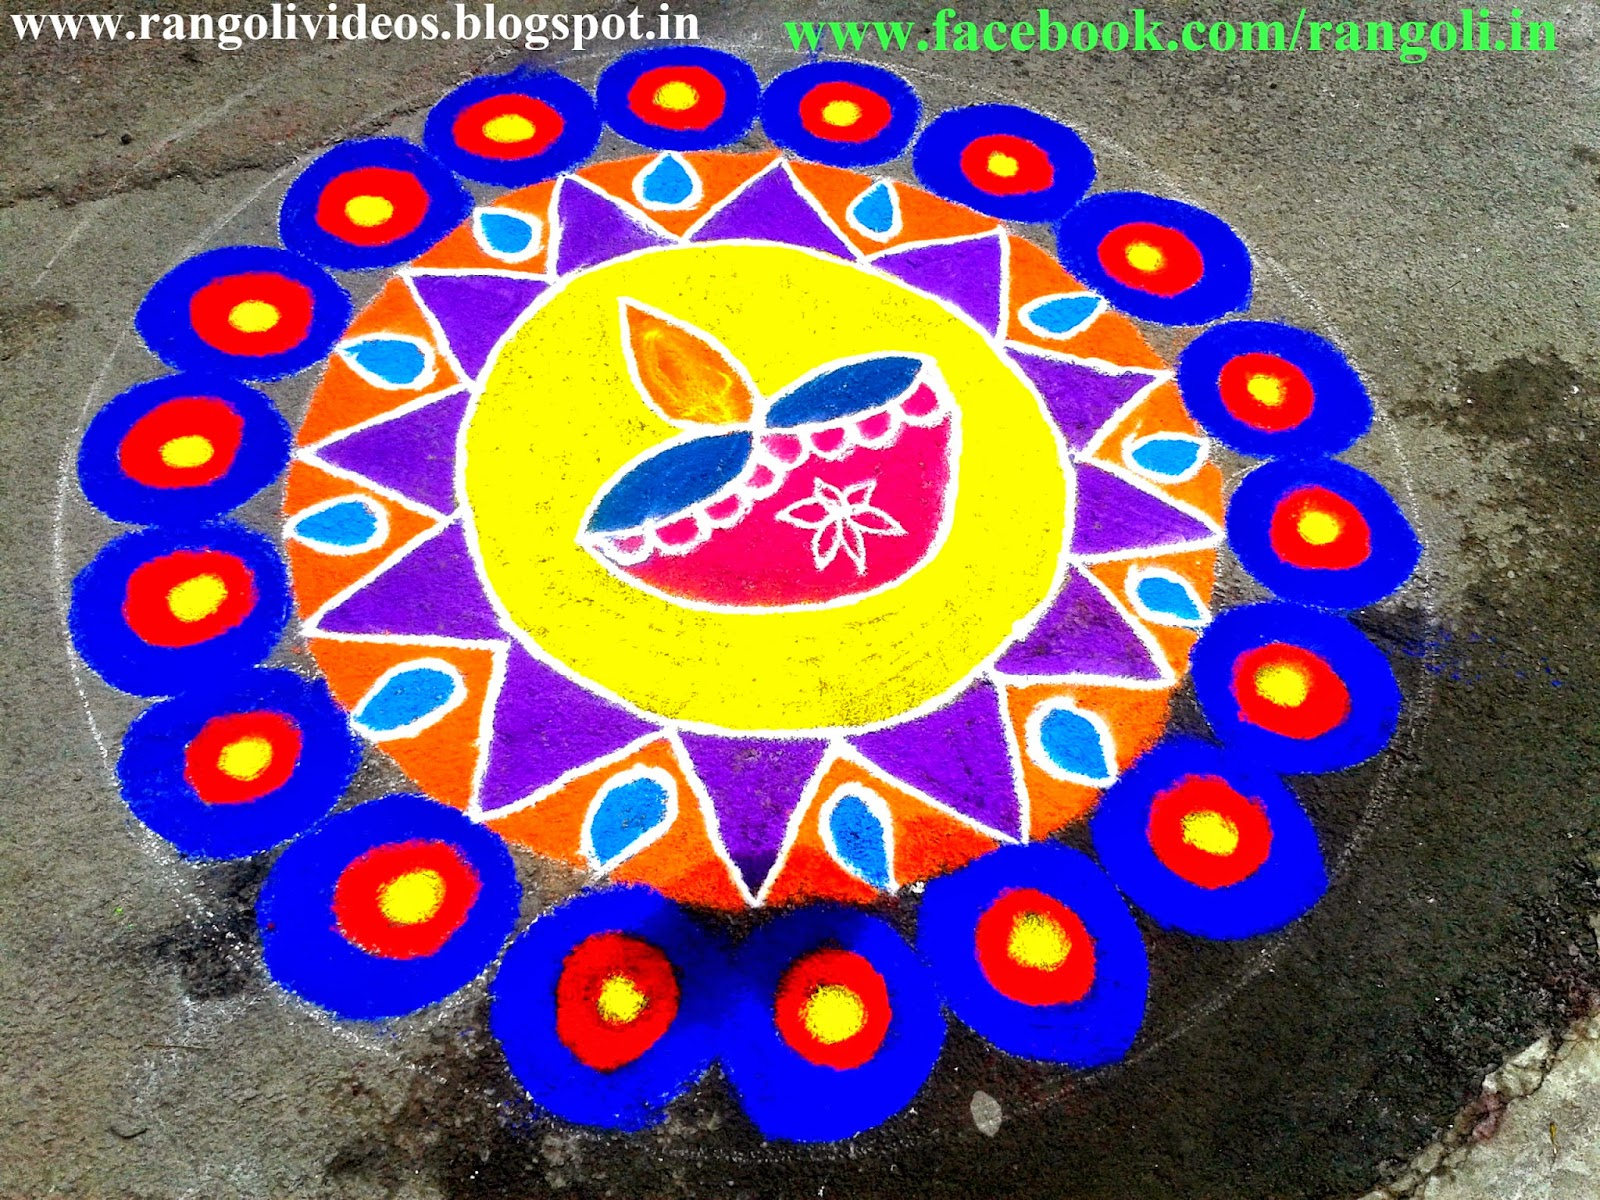 Diwali Rangoli Ideas: Diwali Rangoli , Kolam , Designs Images: November 2013